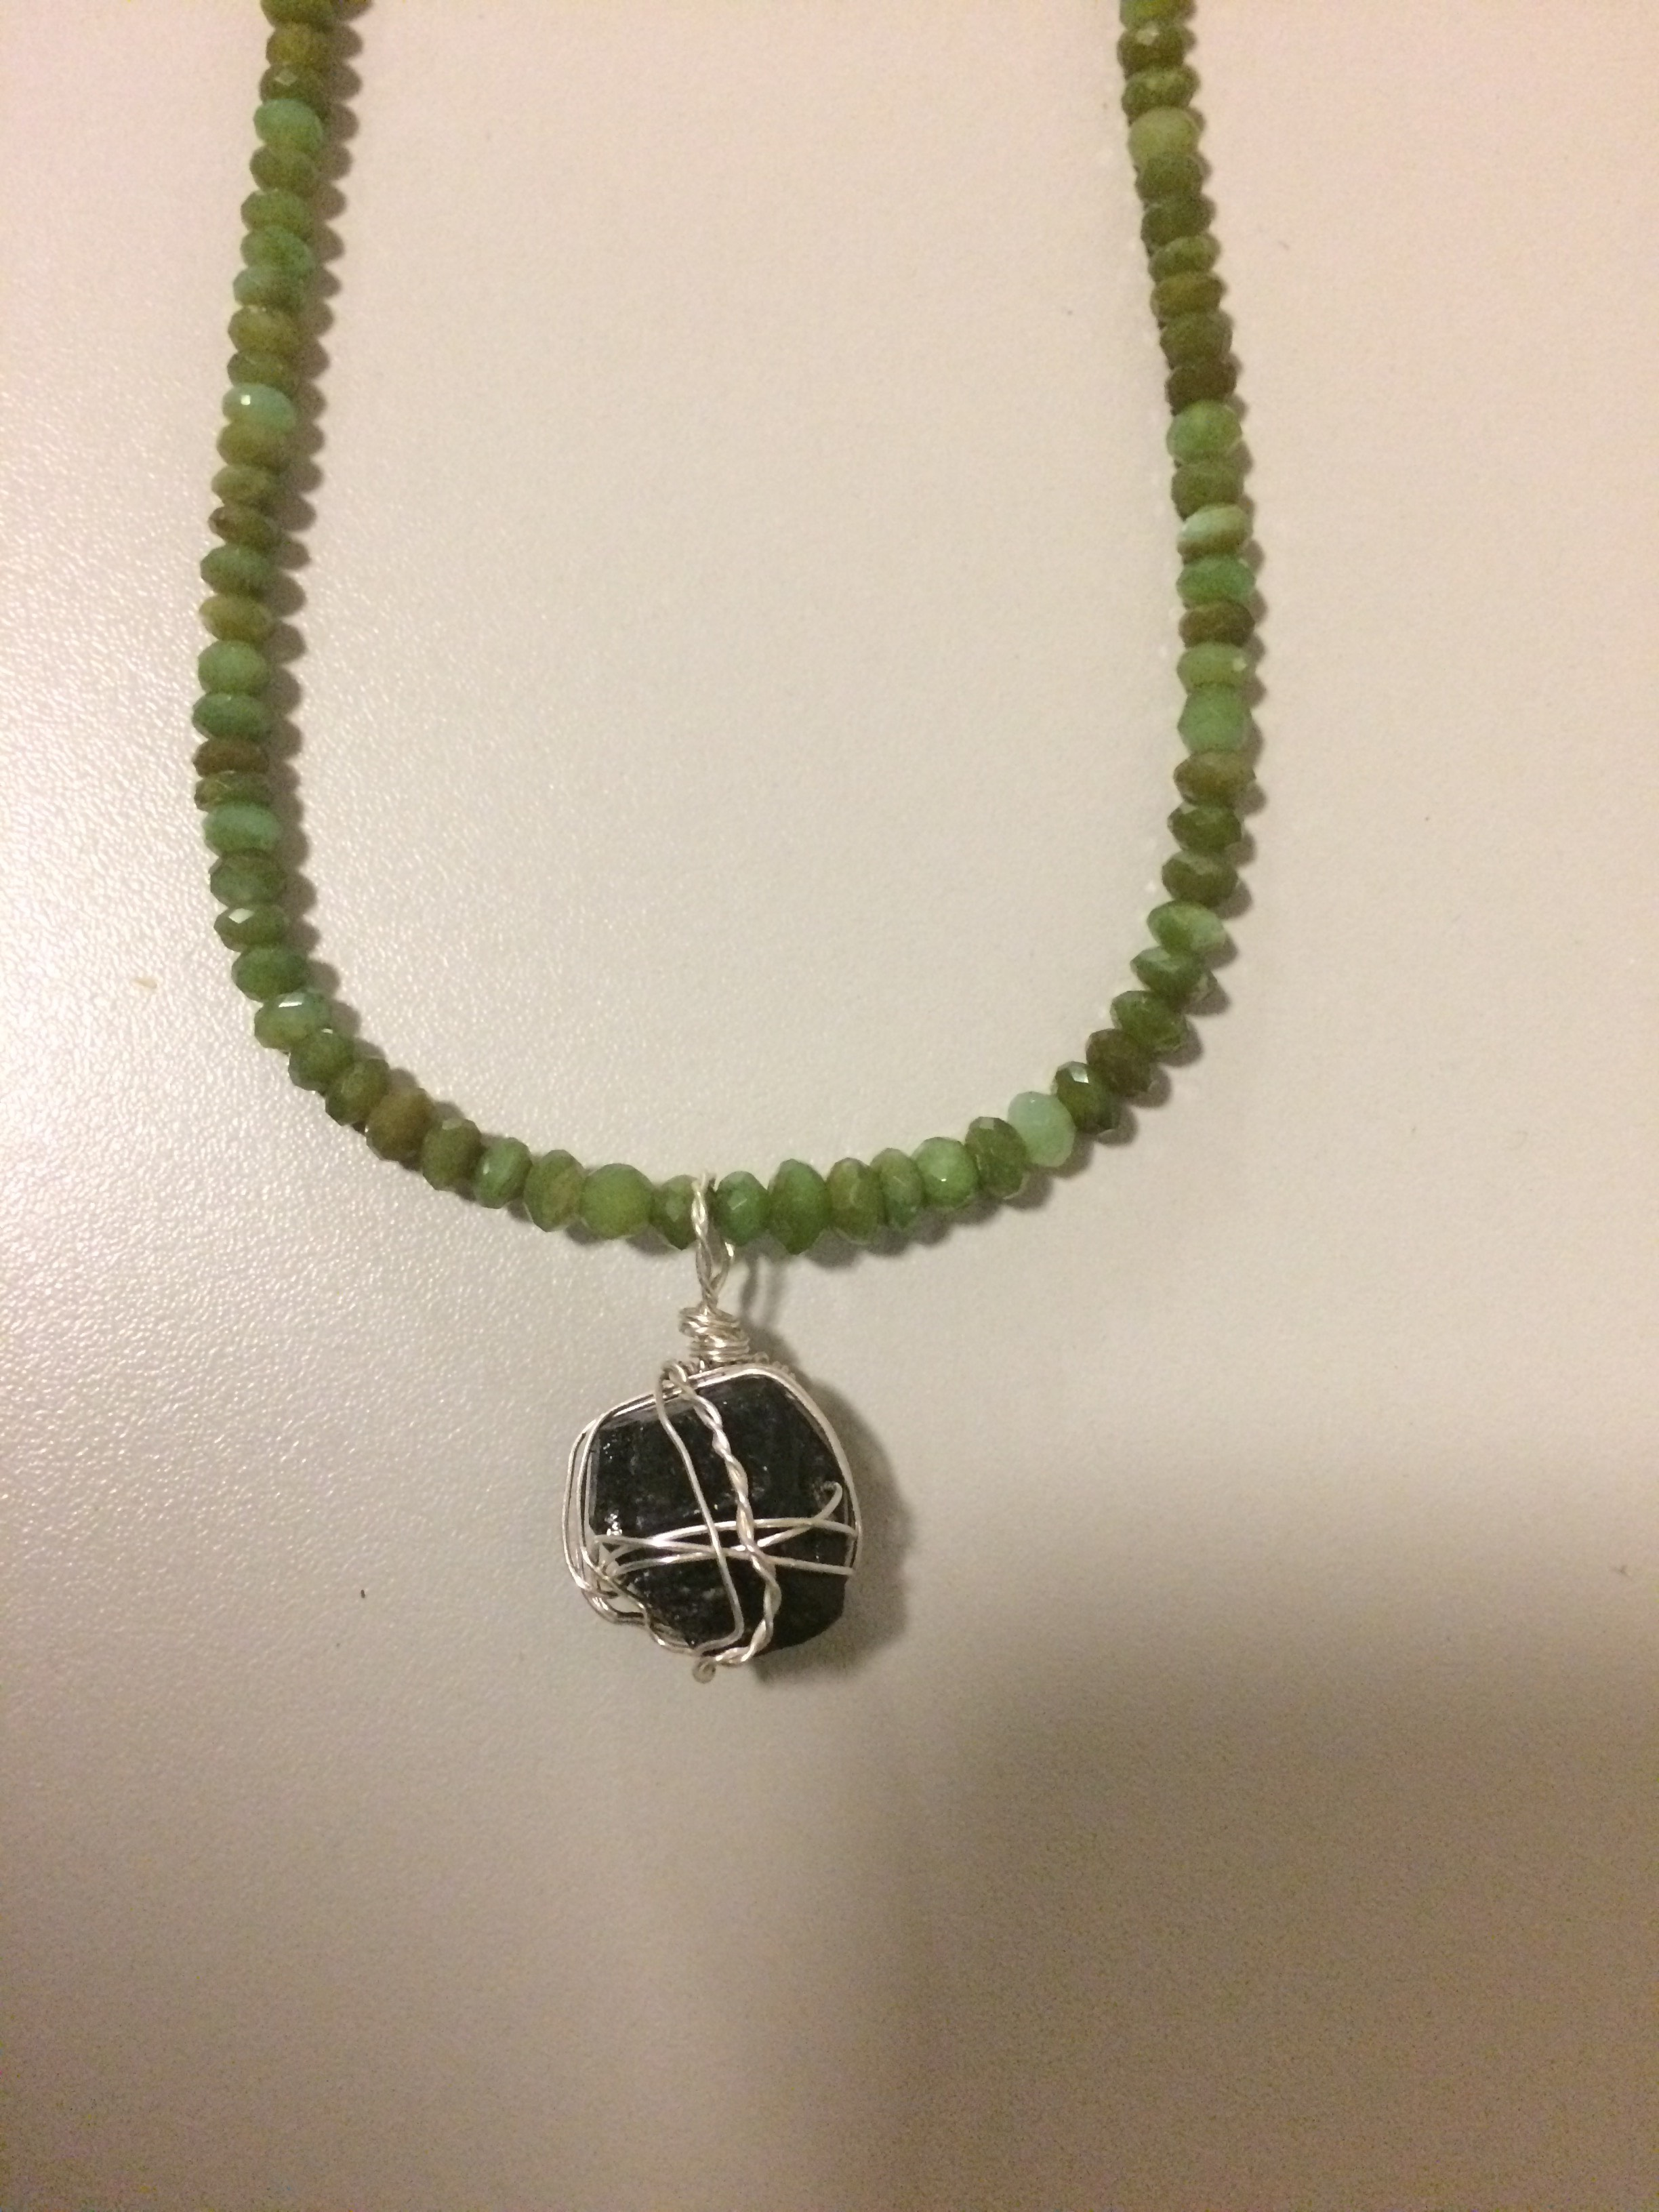 Green Peruvian Opal Necklace with Black Tourmaline Pendant with Sterling Silver Chain/Findings